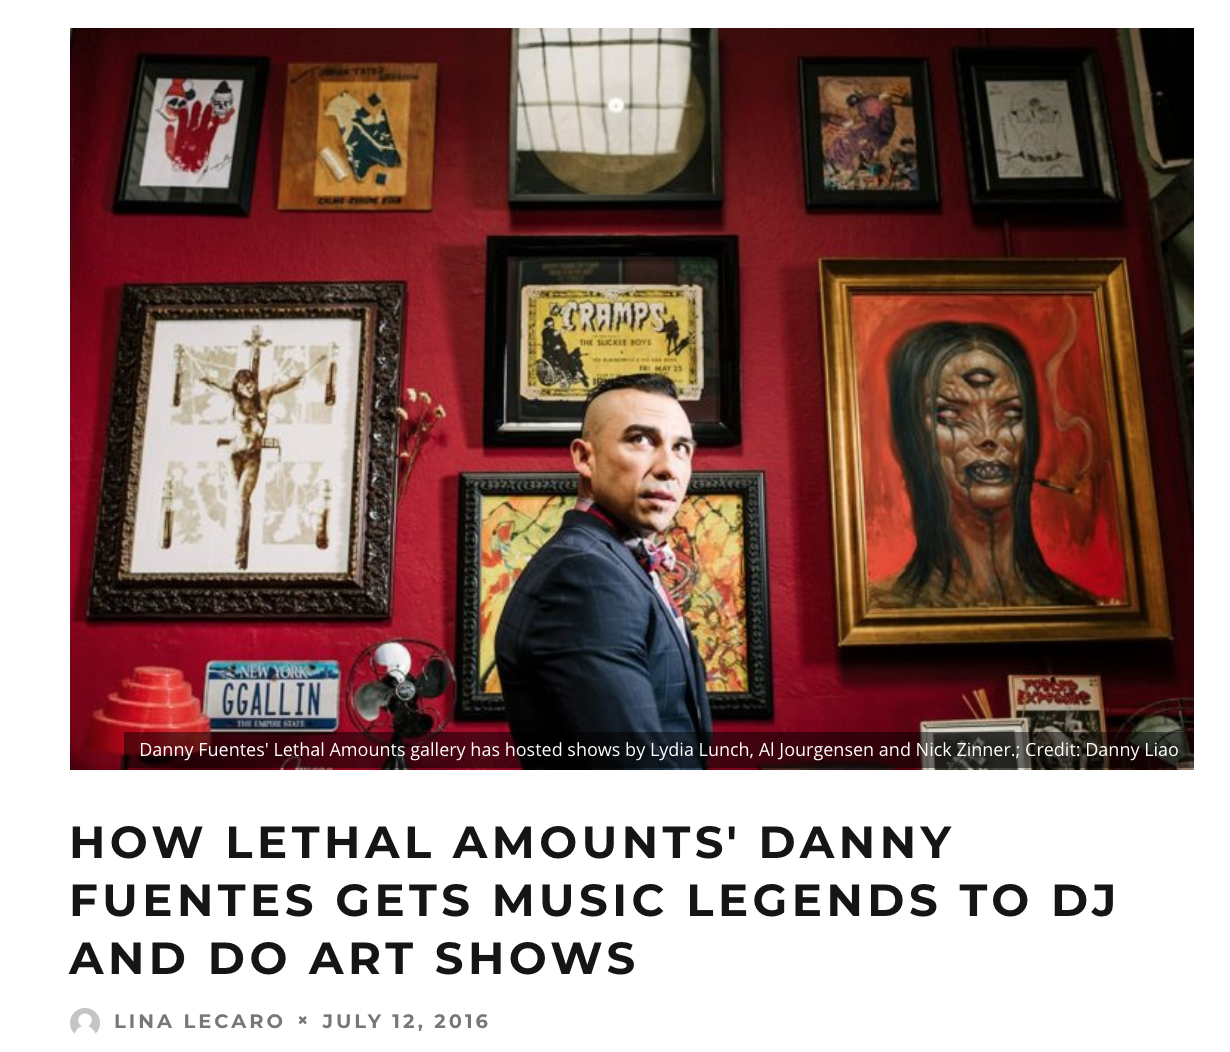 LA WEEKLY - feature on gallery and promoting style of Lethal Amounts gallery